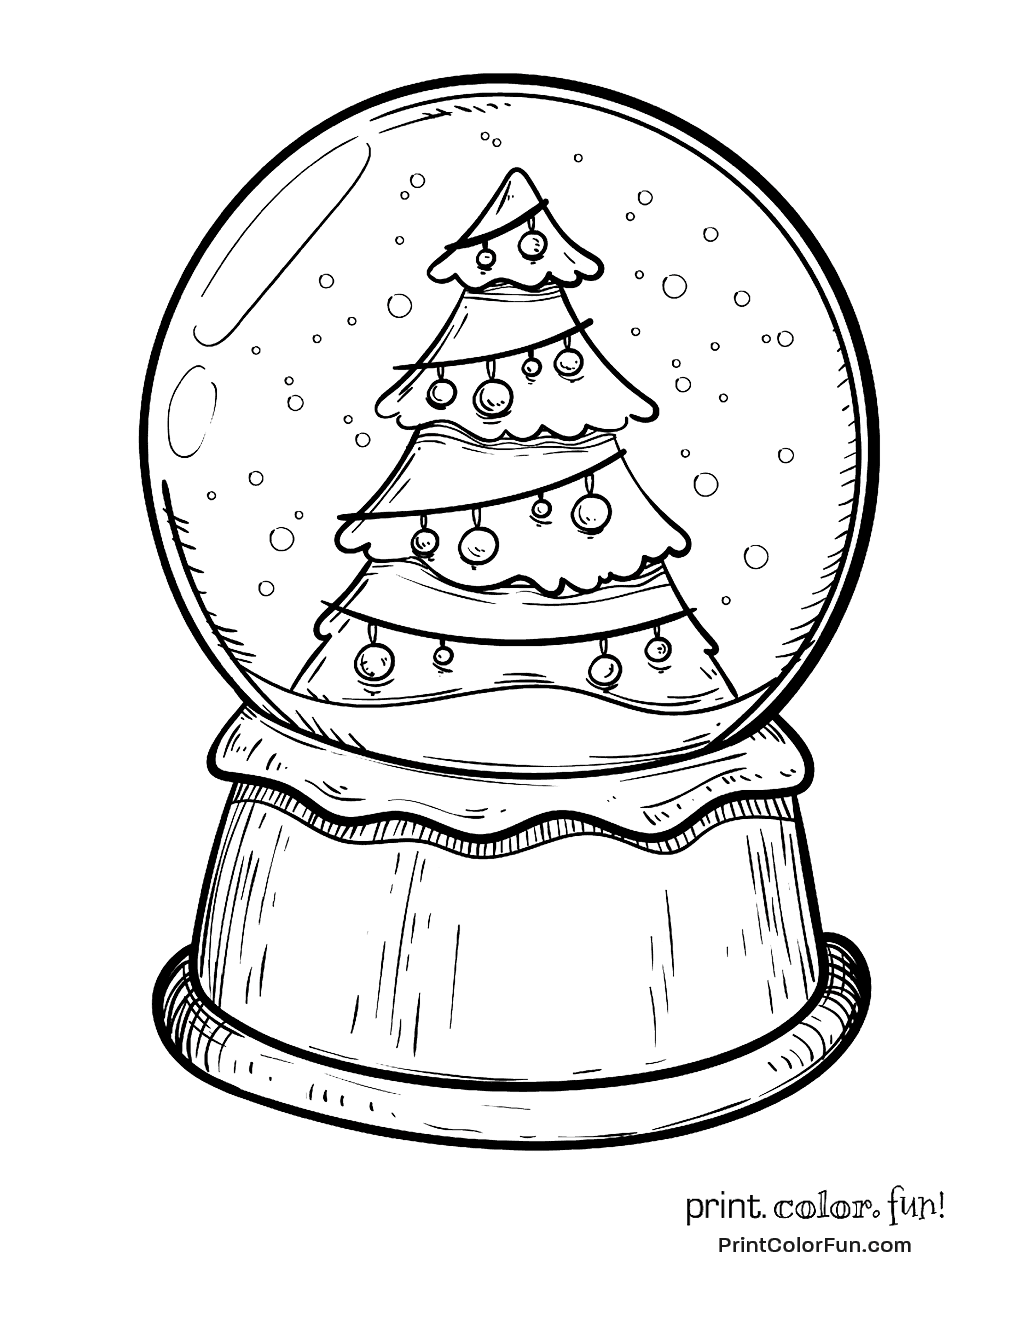 Printable Christmas Colouring Pages The Organised Housewife Christmas Tree Coloring Page Printable Christmas Coloring Pages Tree Coloring Page